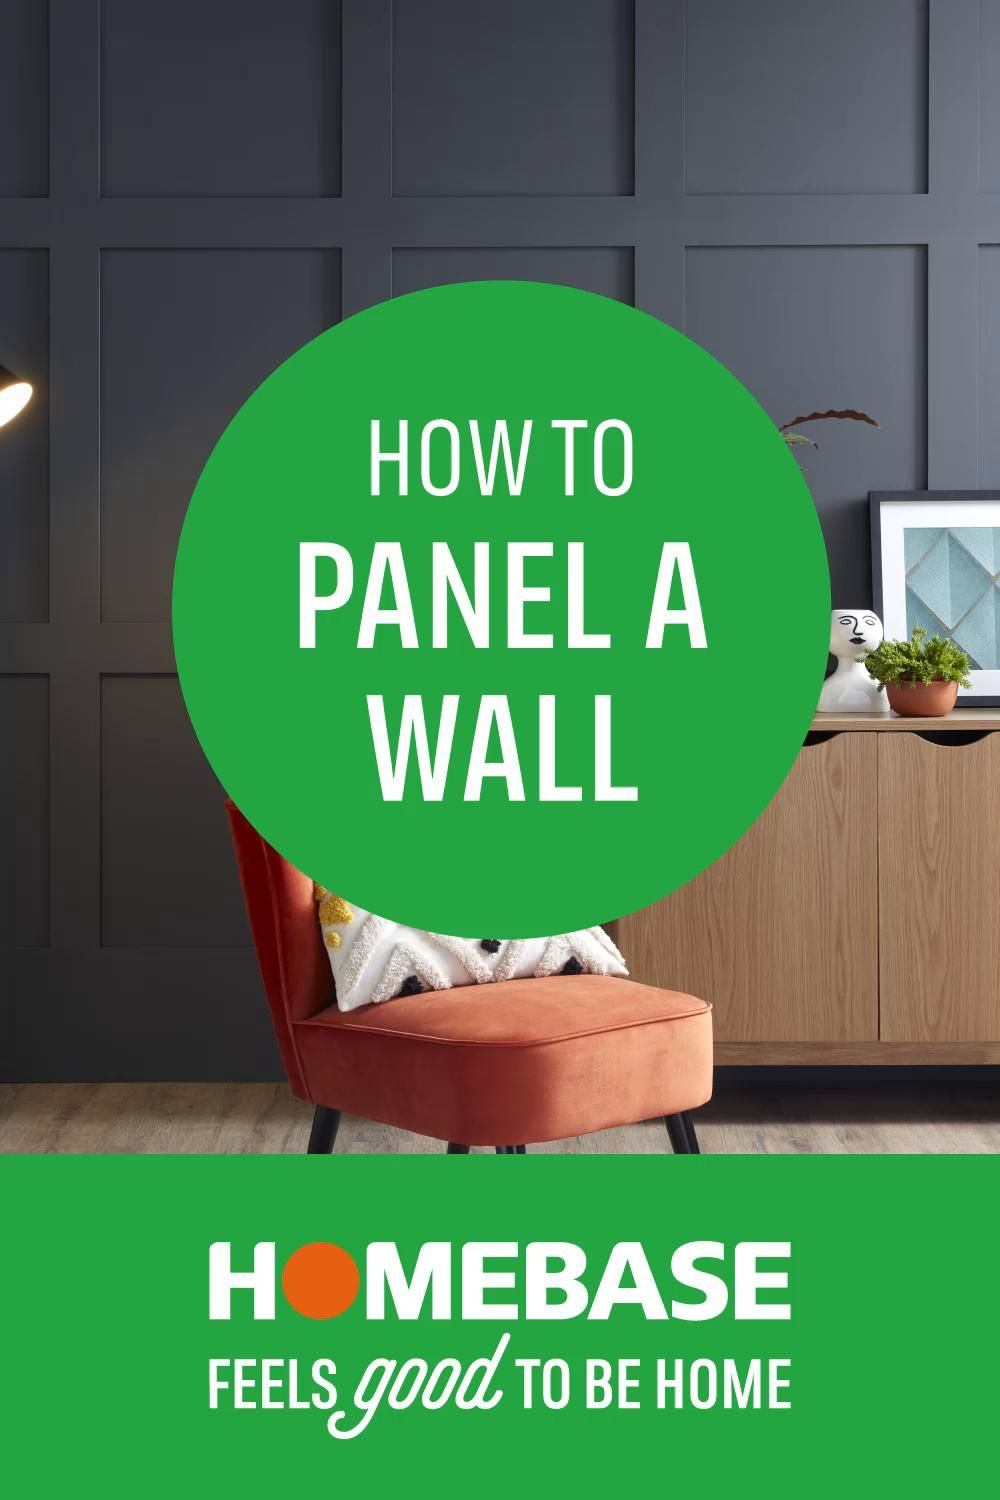 Homebase Wall Panelling Video In 2021 Wall Paneling Paneling Bohemian Bedroom Decor [ 1500 x 1000 Pixel ]